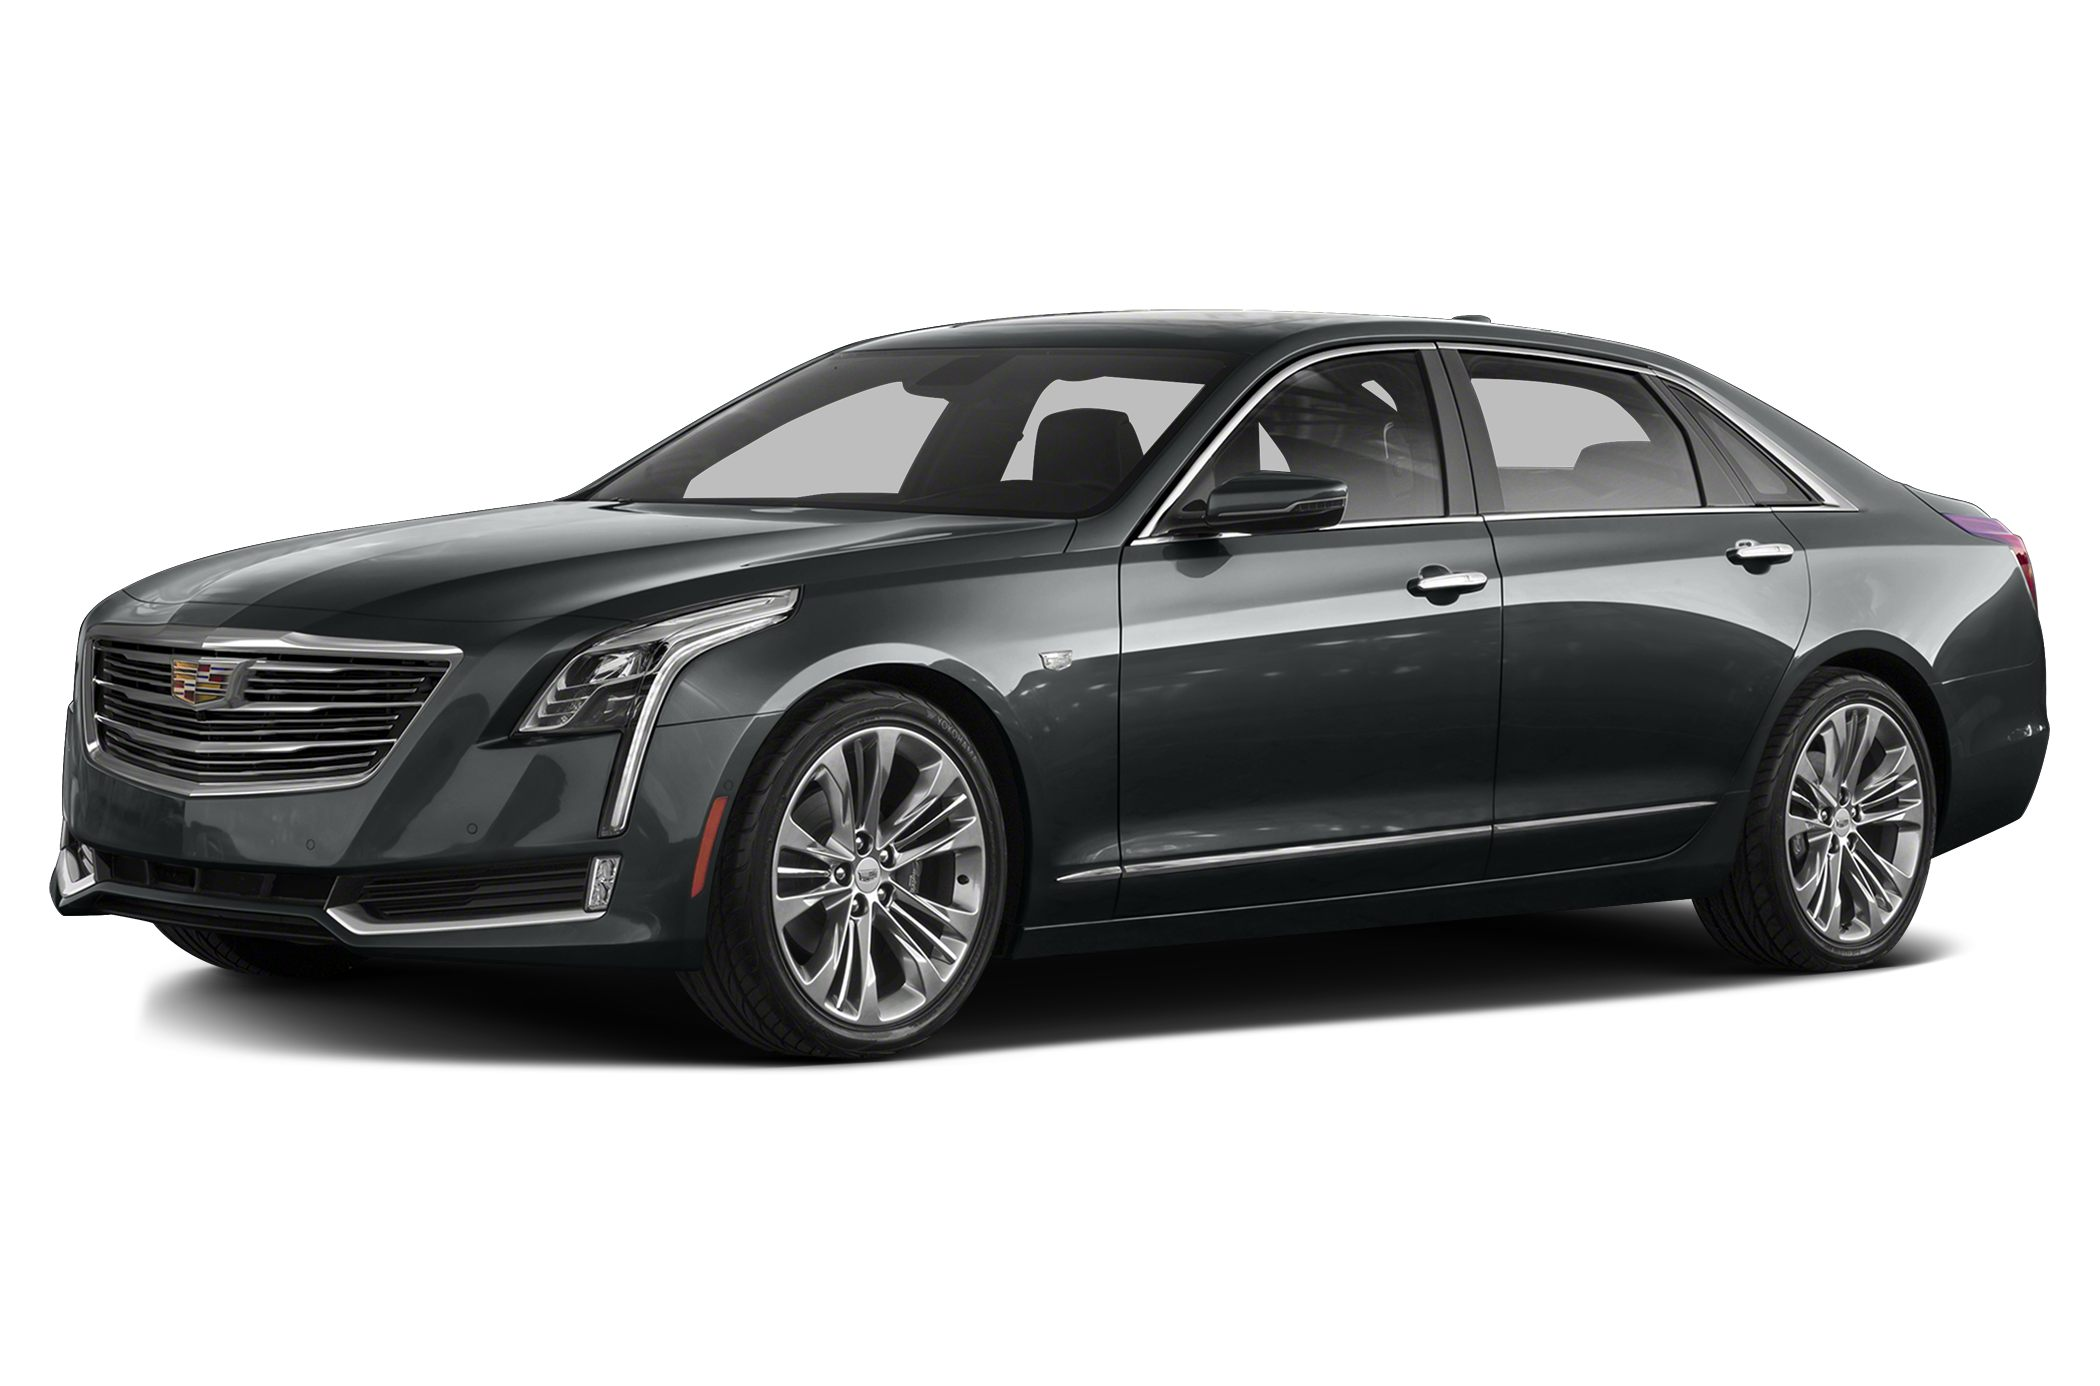 cadillac ct6 prices reviews and new model information autos post. Black Bedroom Furniture Sets. Home Design Ideas